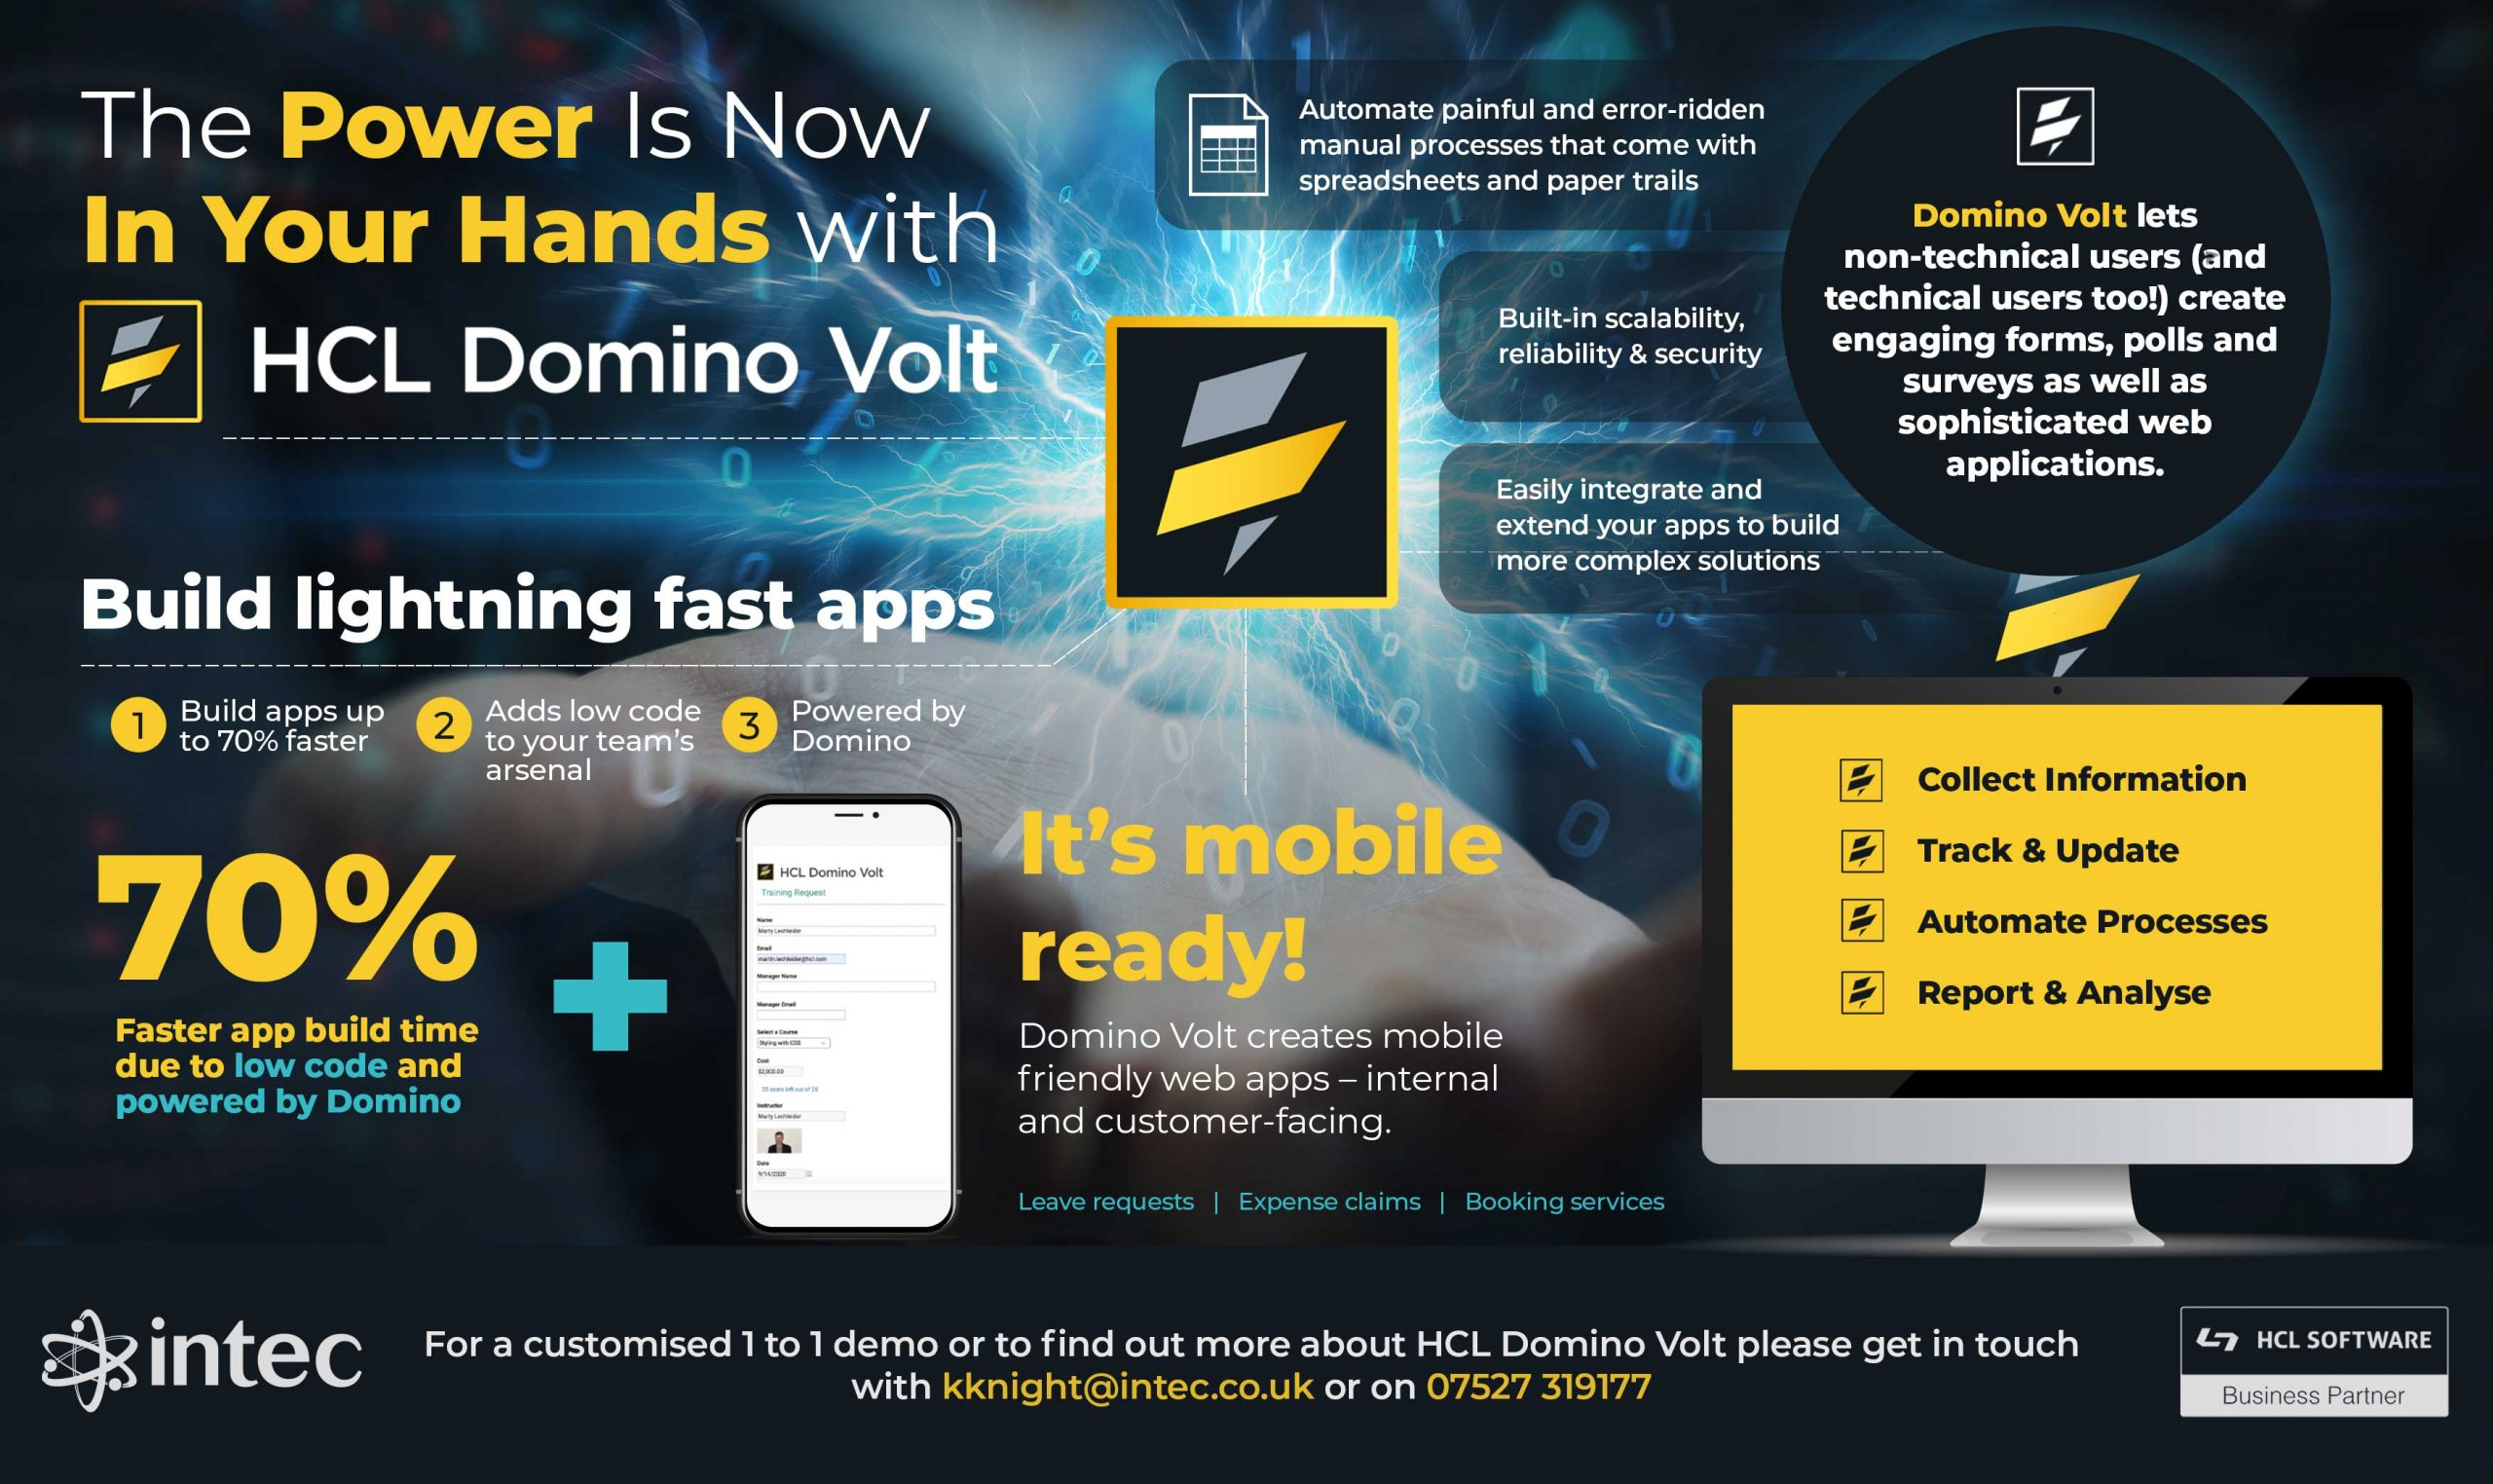 HCL Domino Volt Infographic